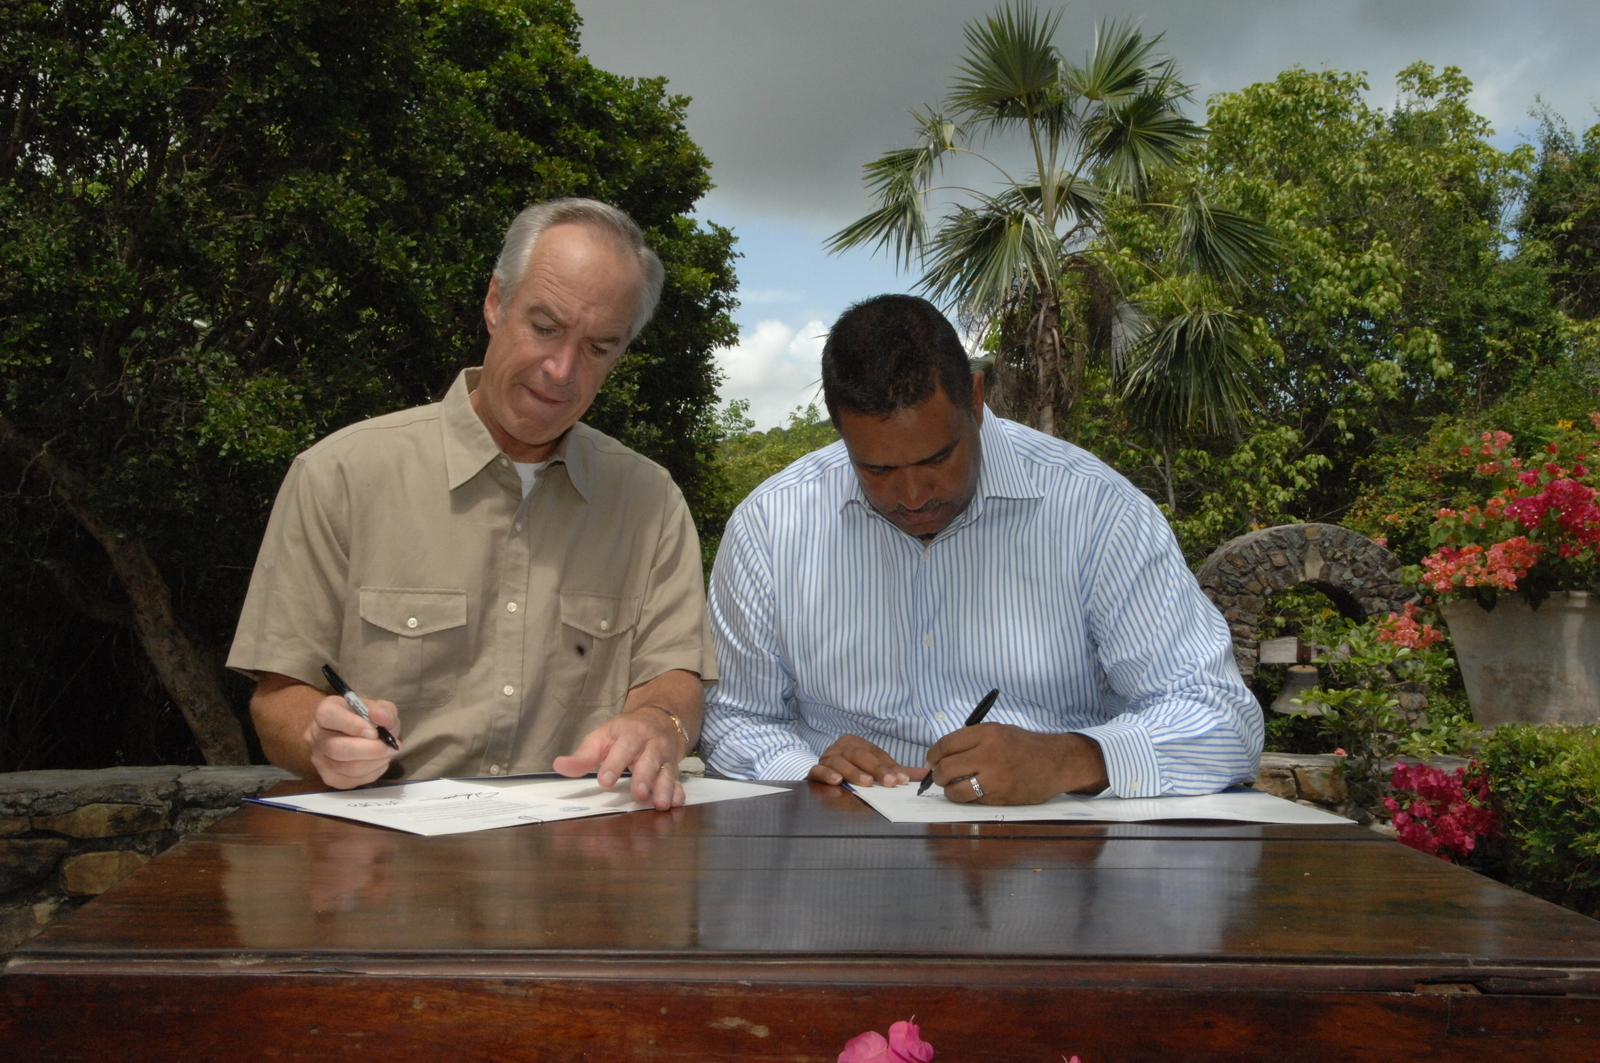 [Assignment: 48-DPA-08-21-08_SOI_K_Croix] Visit of Secretary Dirk Kempthorne [and aides] to St. Croix,  U.S. Virgin Islands, [for touring of the Estate Grange Alexander Hamilton Boyhood Home, the Juan F. Luis Hospital, and other natural and developed sites, as well as discussions with National Park Service personnel and Virgin Islands officials [48-DPA-08-21-08_SOI_K_Croix_IOD_3426.JPG]